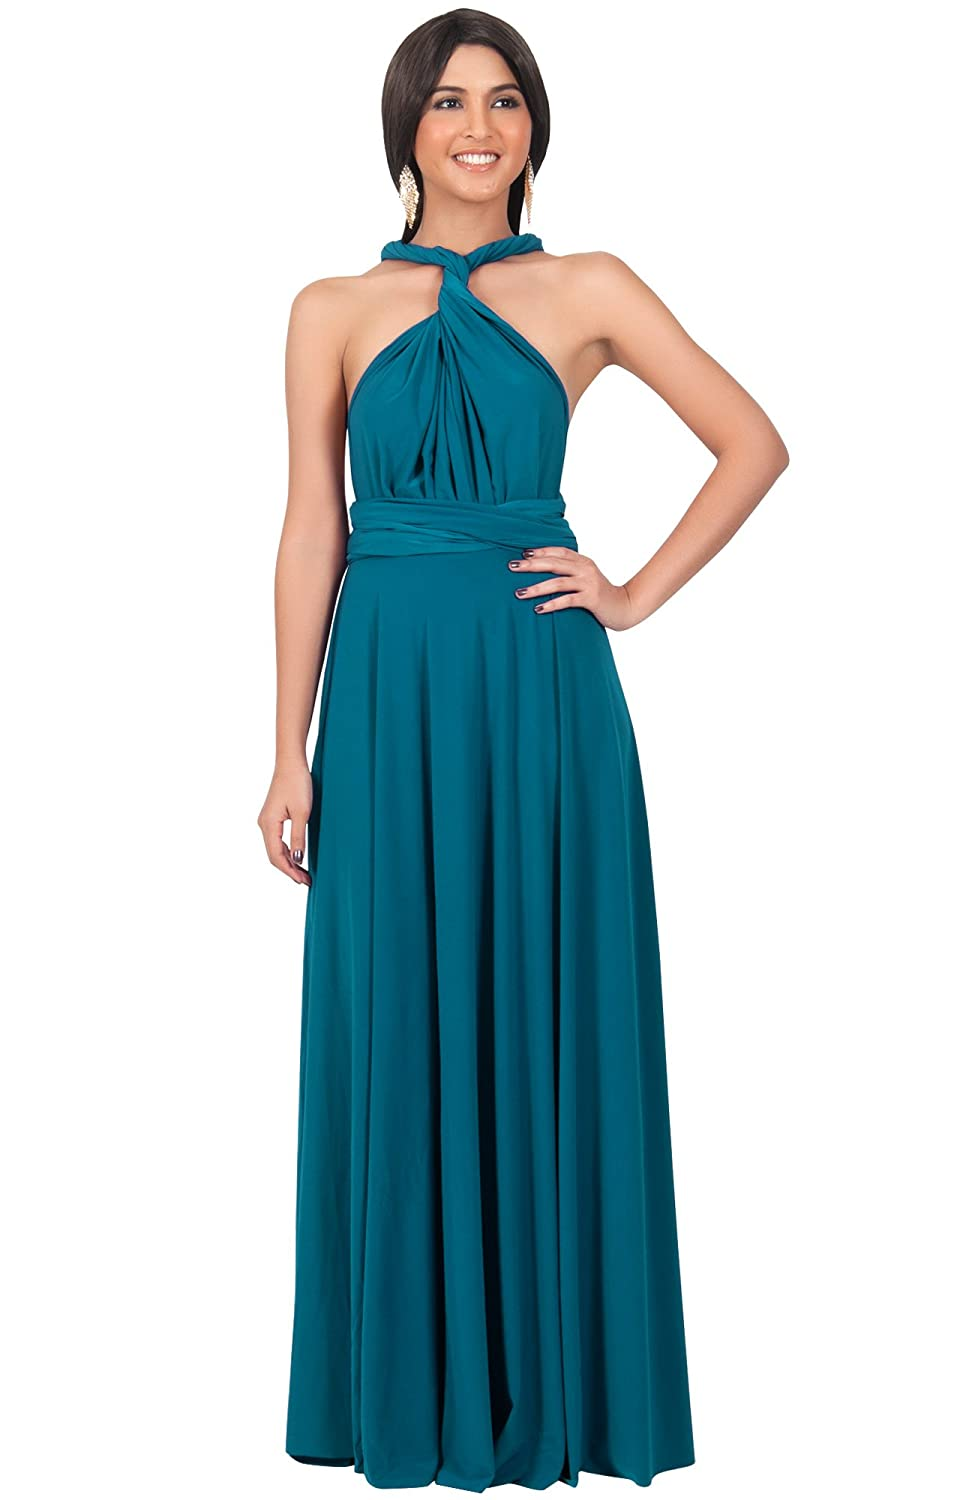 Koh koh womens bridesmaid convertible wrap long cocktail gown koh koh womens bridesmaid convertible wrap long cocktail gown maxi dress dresses x large teal 1 amazon clothing ombrellifo Image collections